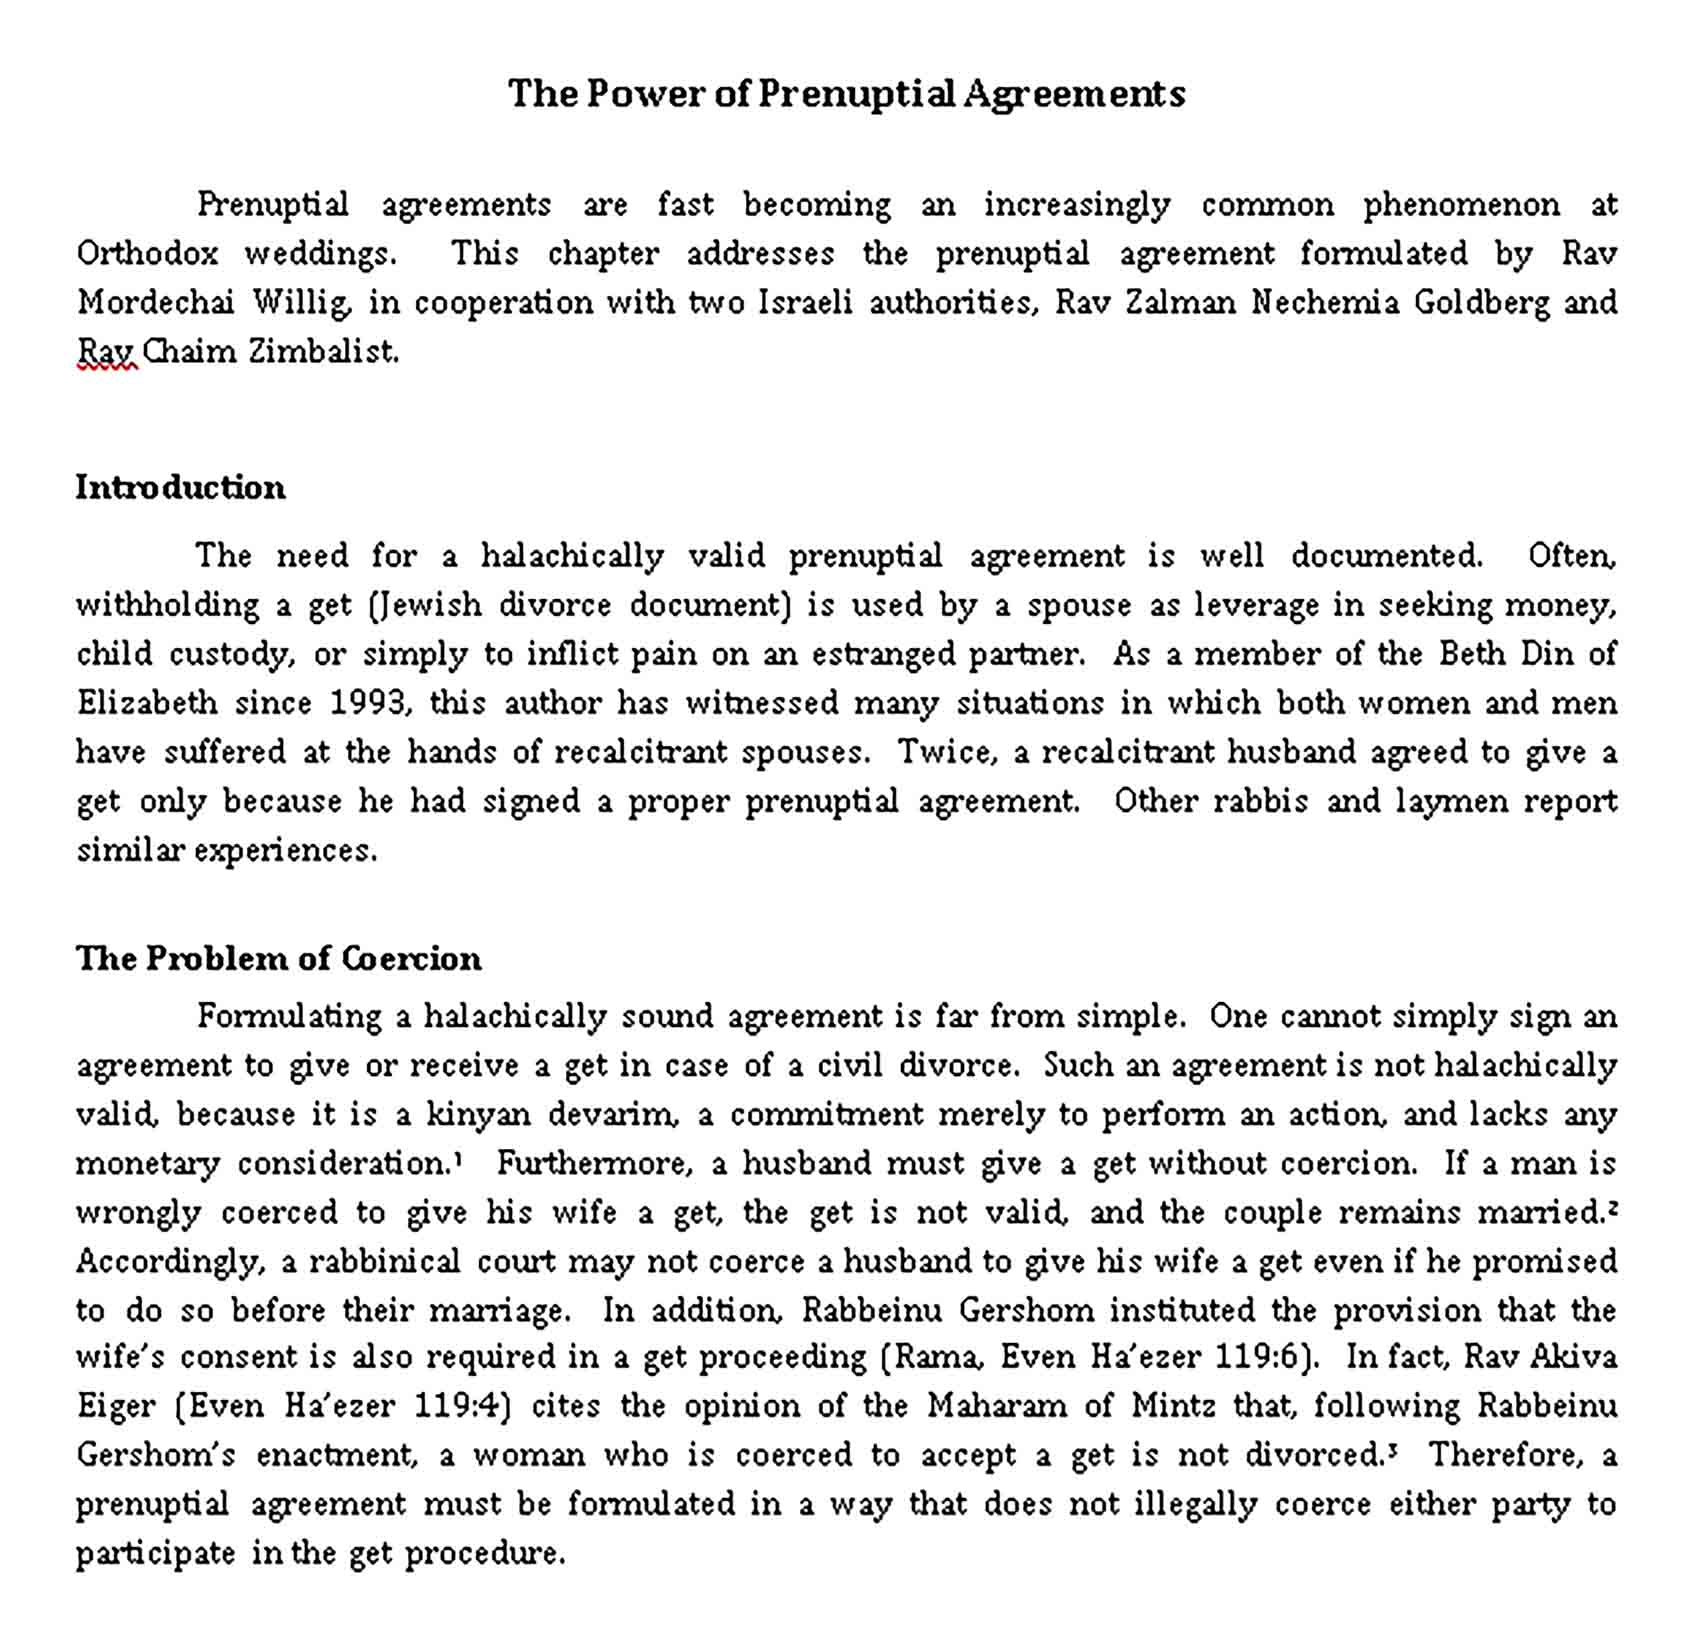 Templates The Power of Prenuptial Agreements Document Sample